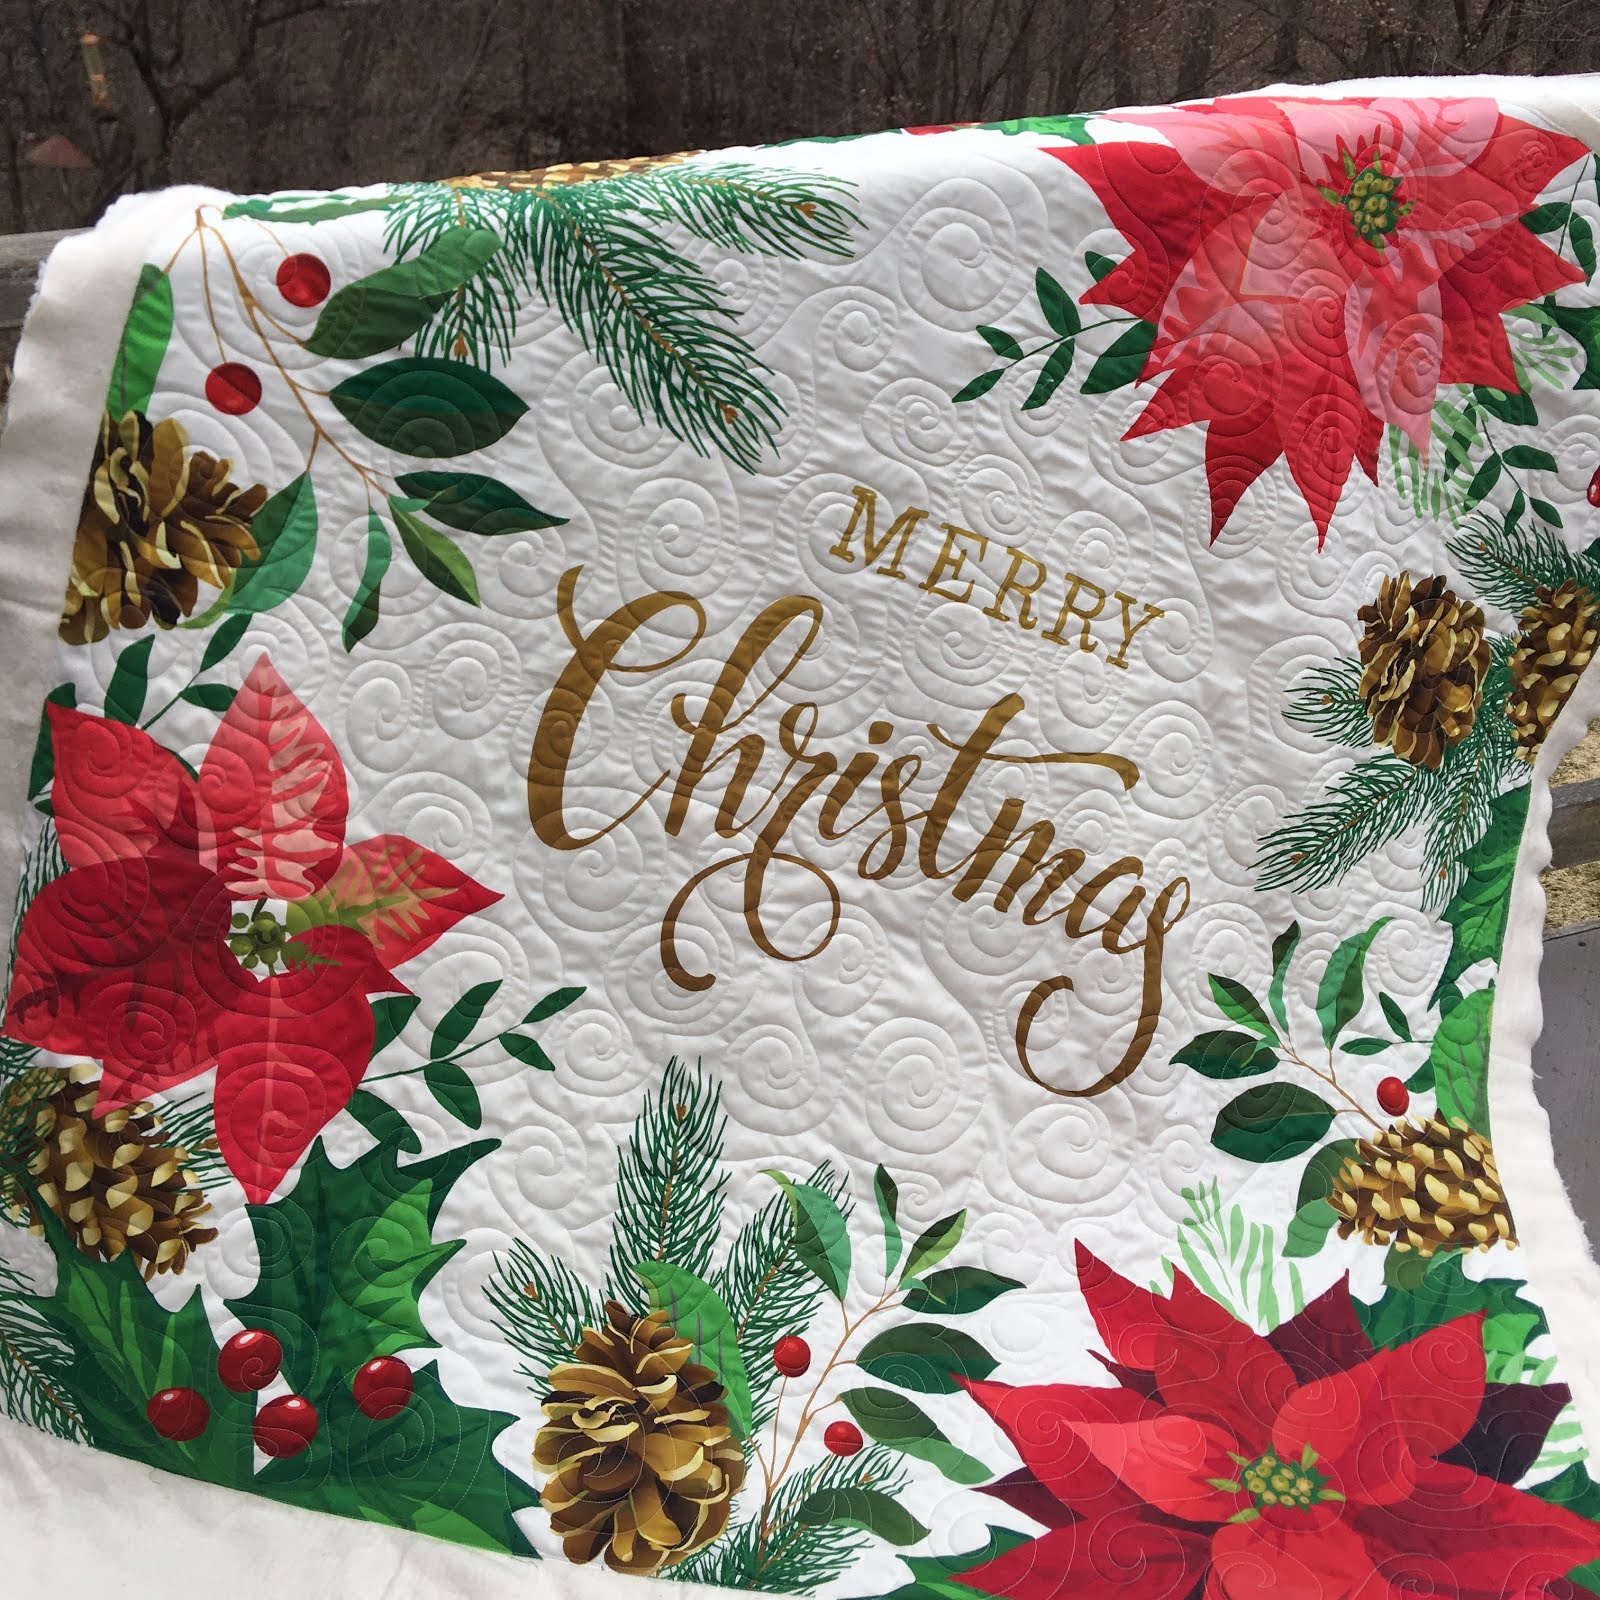 Christmas Quilting Fabric 2020 Grace and Peace Quilting: Kyle's 🎄Christmas Panel 🎄 Number 2 ⼆